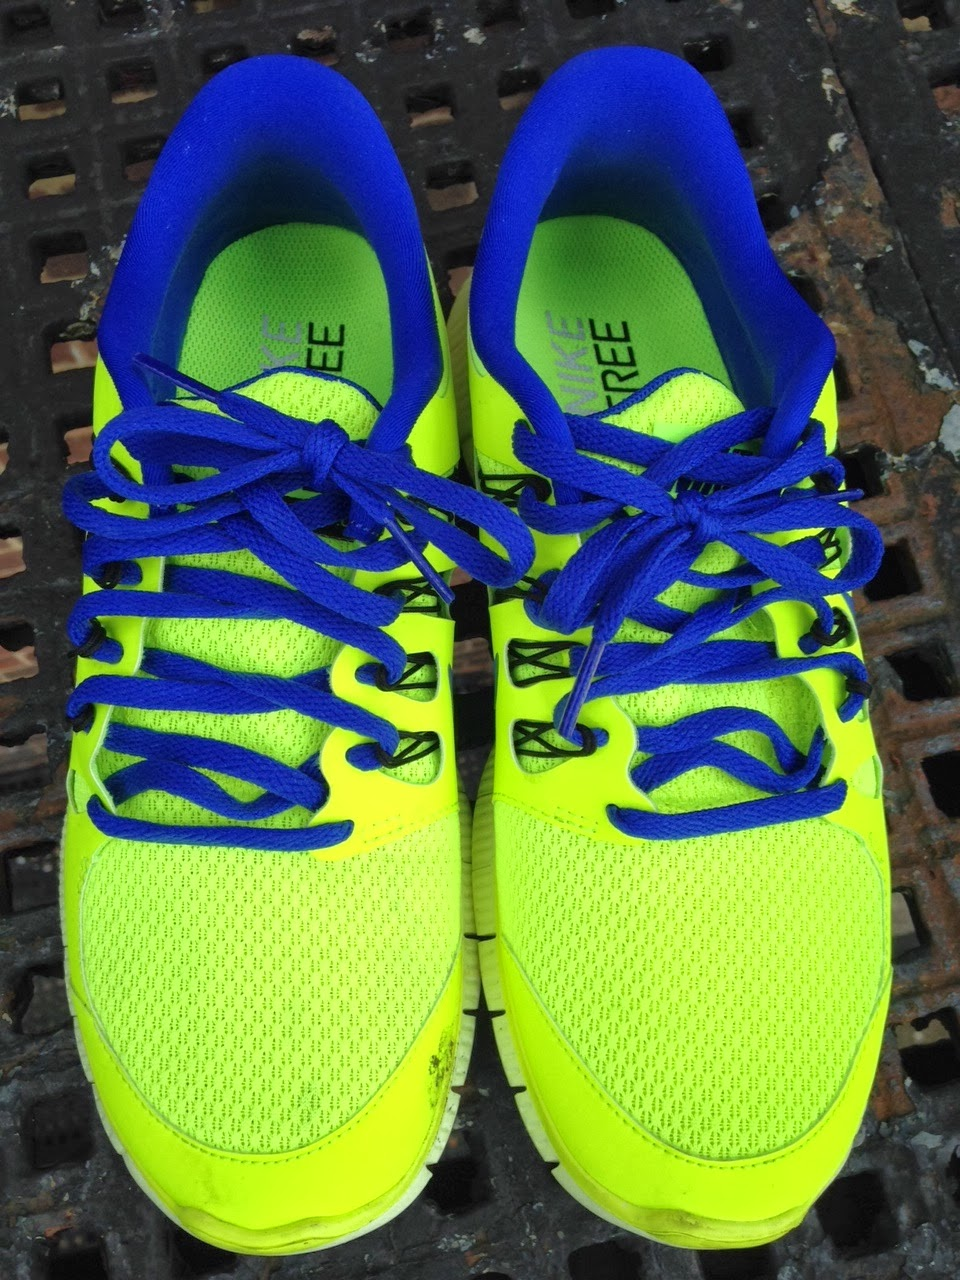 ebaaac7609309 Nike Frees 5.0 Review - The Runner Beans